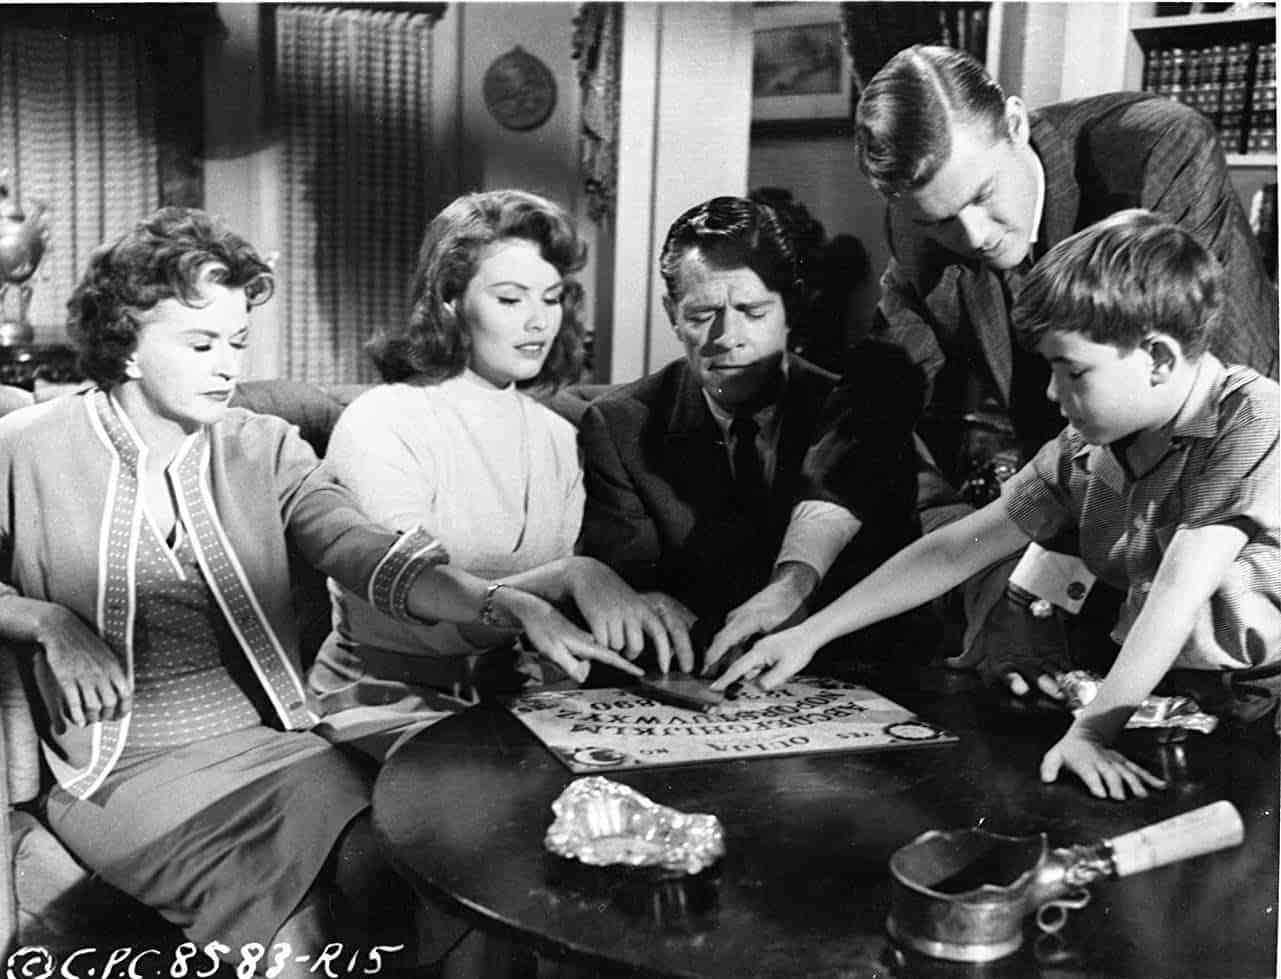 The family conduct a seance - (l to r) Rosemary DeCamp, Jo Morrow, Donald Woods, Martin Milner and Charles Herbert in 13 Ghosts (1960)